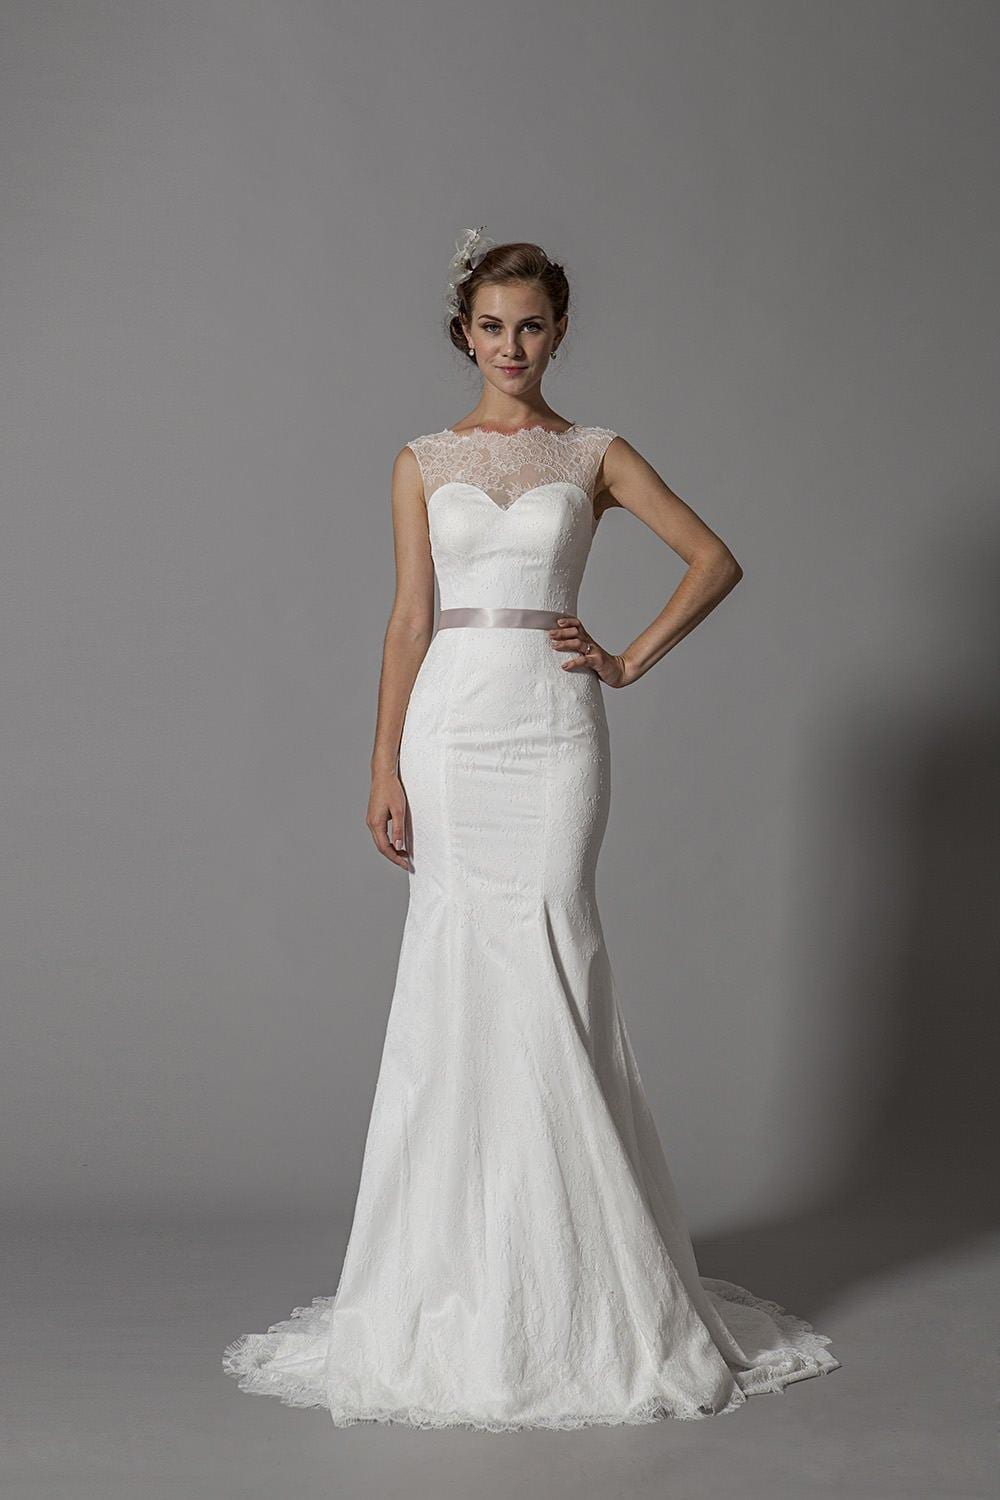 Delicate lace wedding dress with illusion neckline for Lace wedding dress with illusion neckline